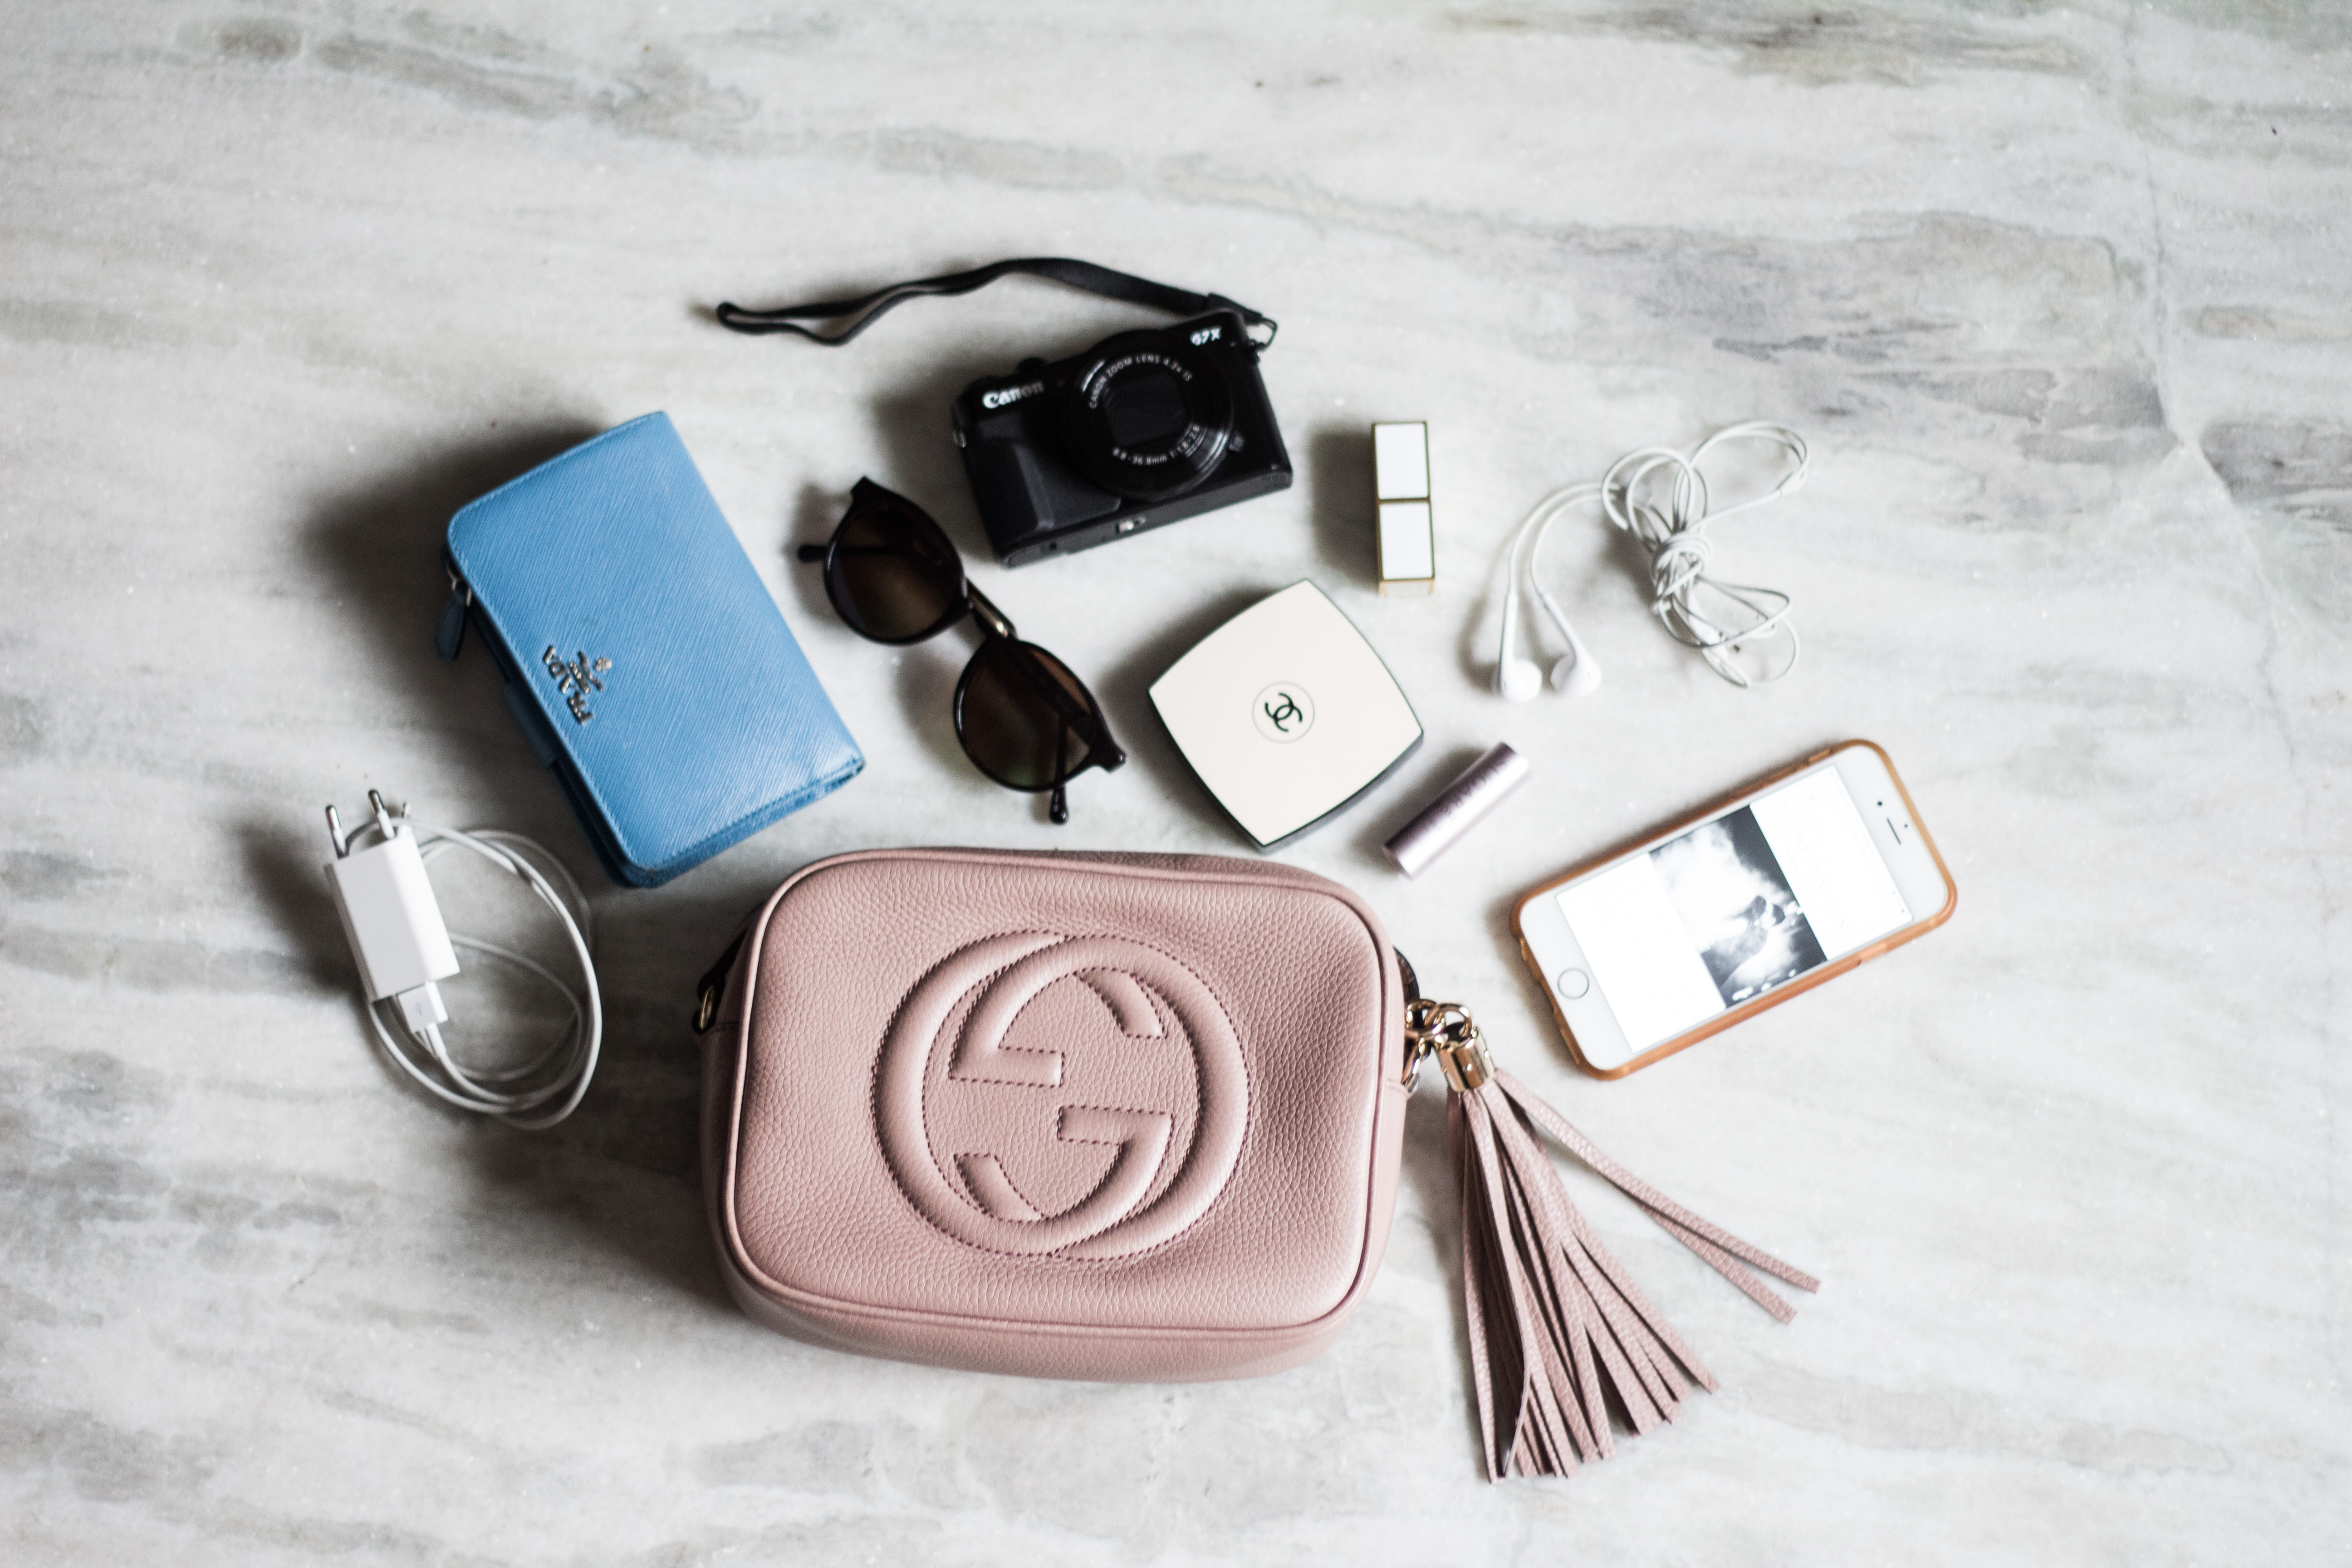 b2c09272ccb So what exactly does this fit? All of the above – wallet, a small camera,  sunglasses, phone, bits of makeup and wires. A typical long wallet would  take up ...